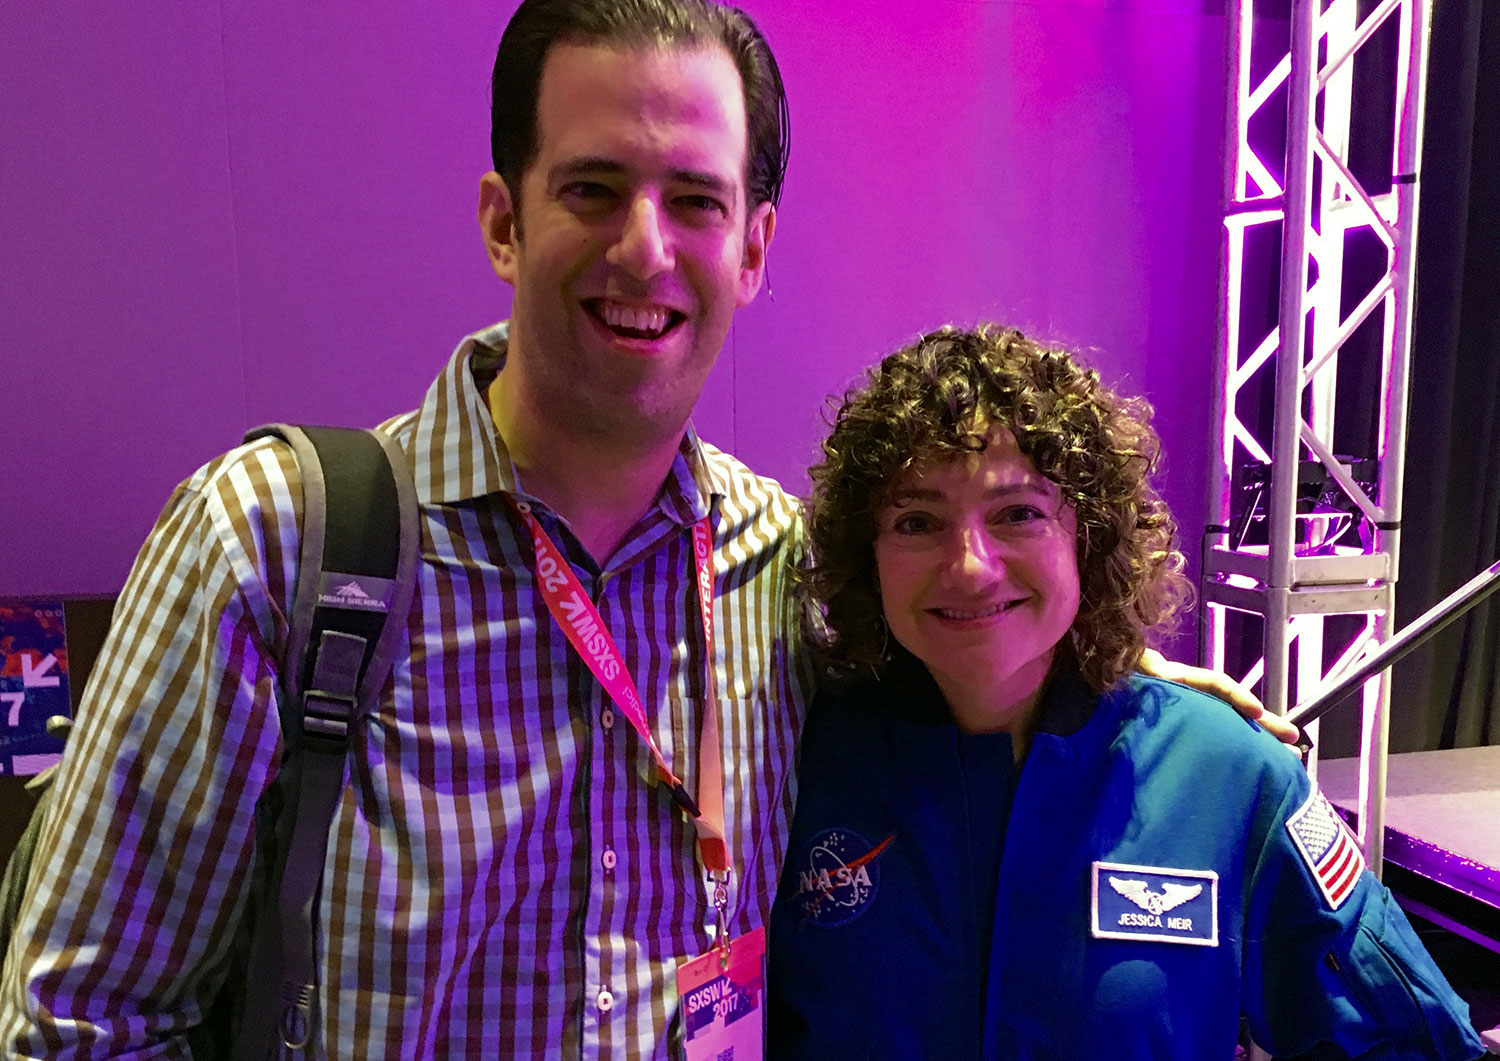 Astronaut Jessica Meir is out of this world